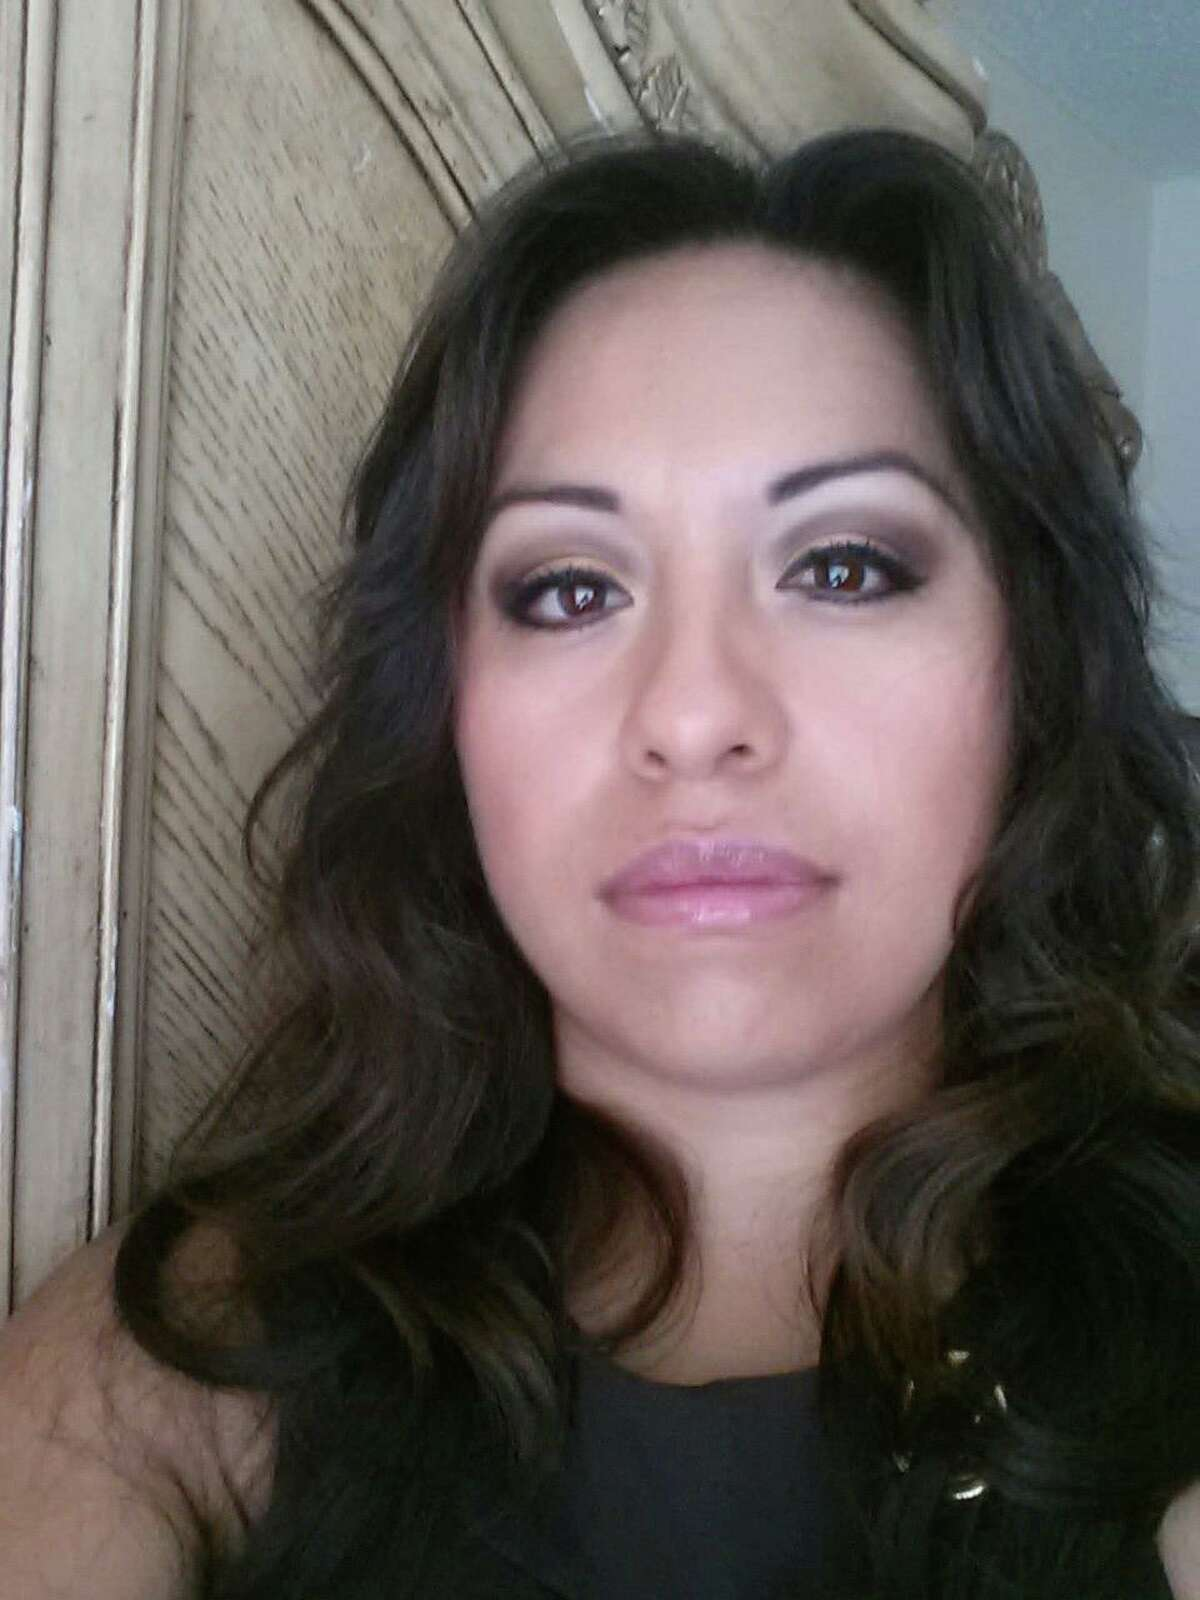 The remains of Angelica Jimenez, 34, a San Antonio mother of four was discovered Oct. 25, 2016 off Bartell Road in East Kerr County near I-10. She went missing from San Antonio on November 25, 2015.